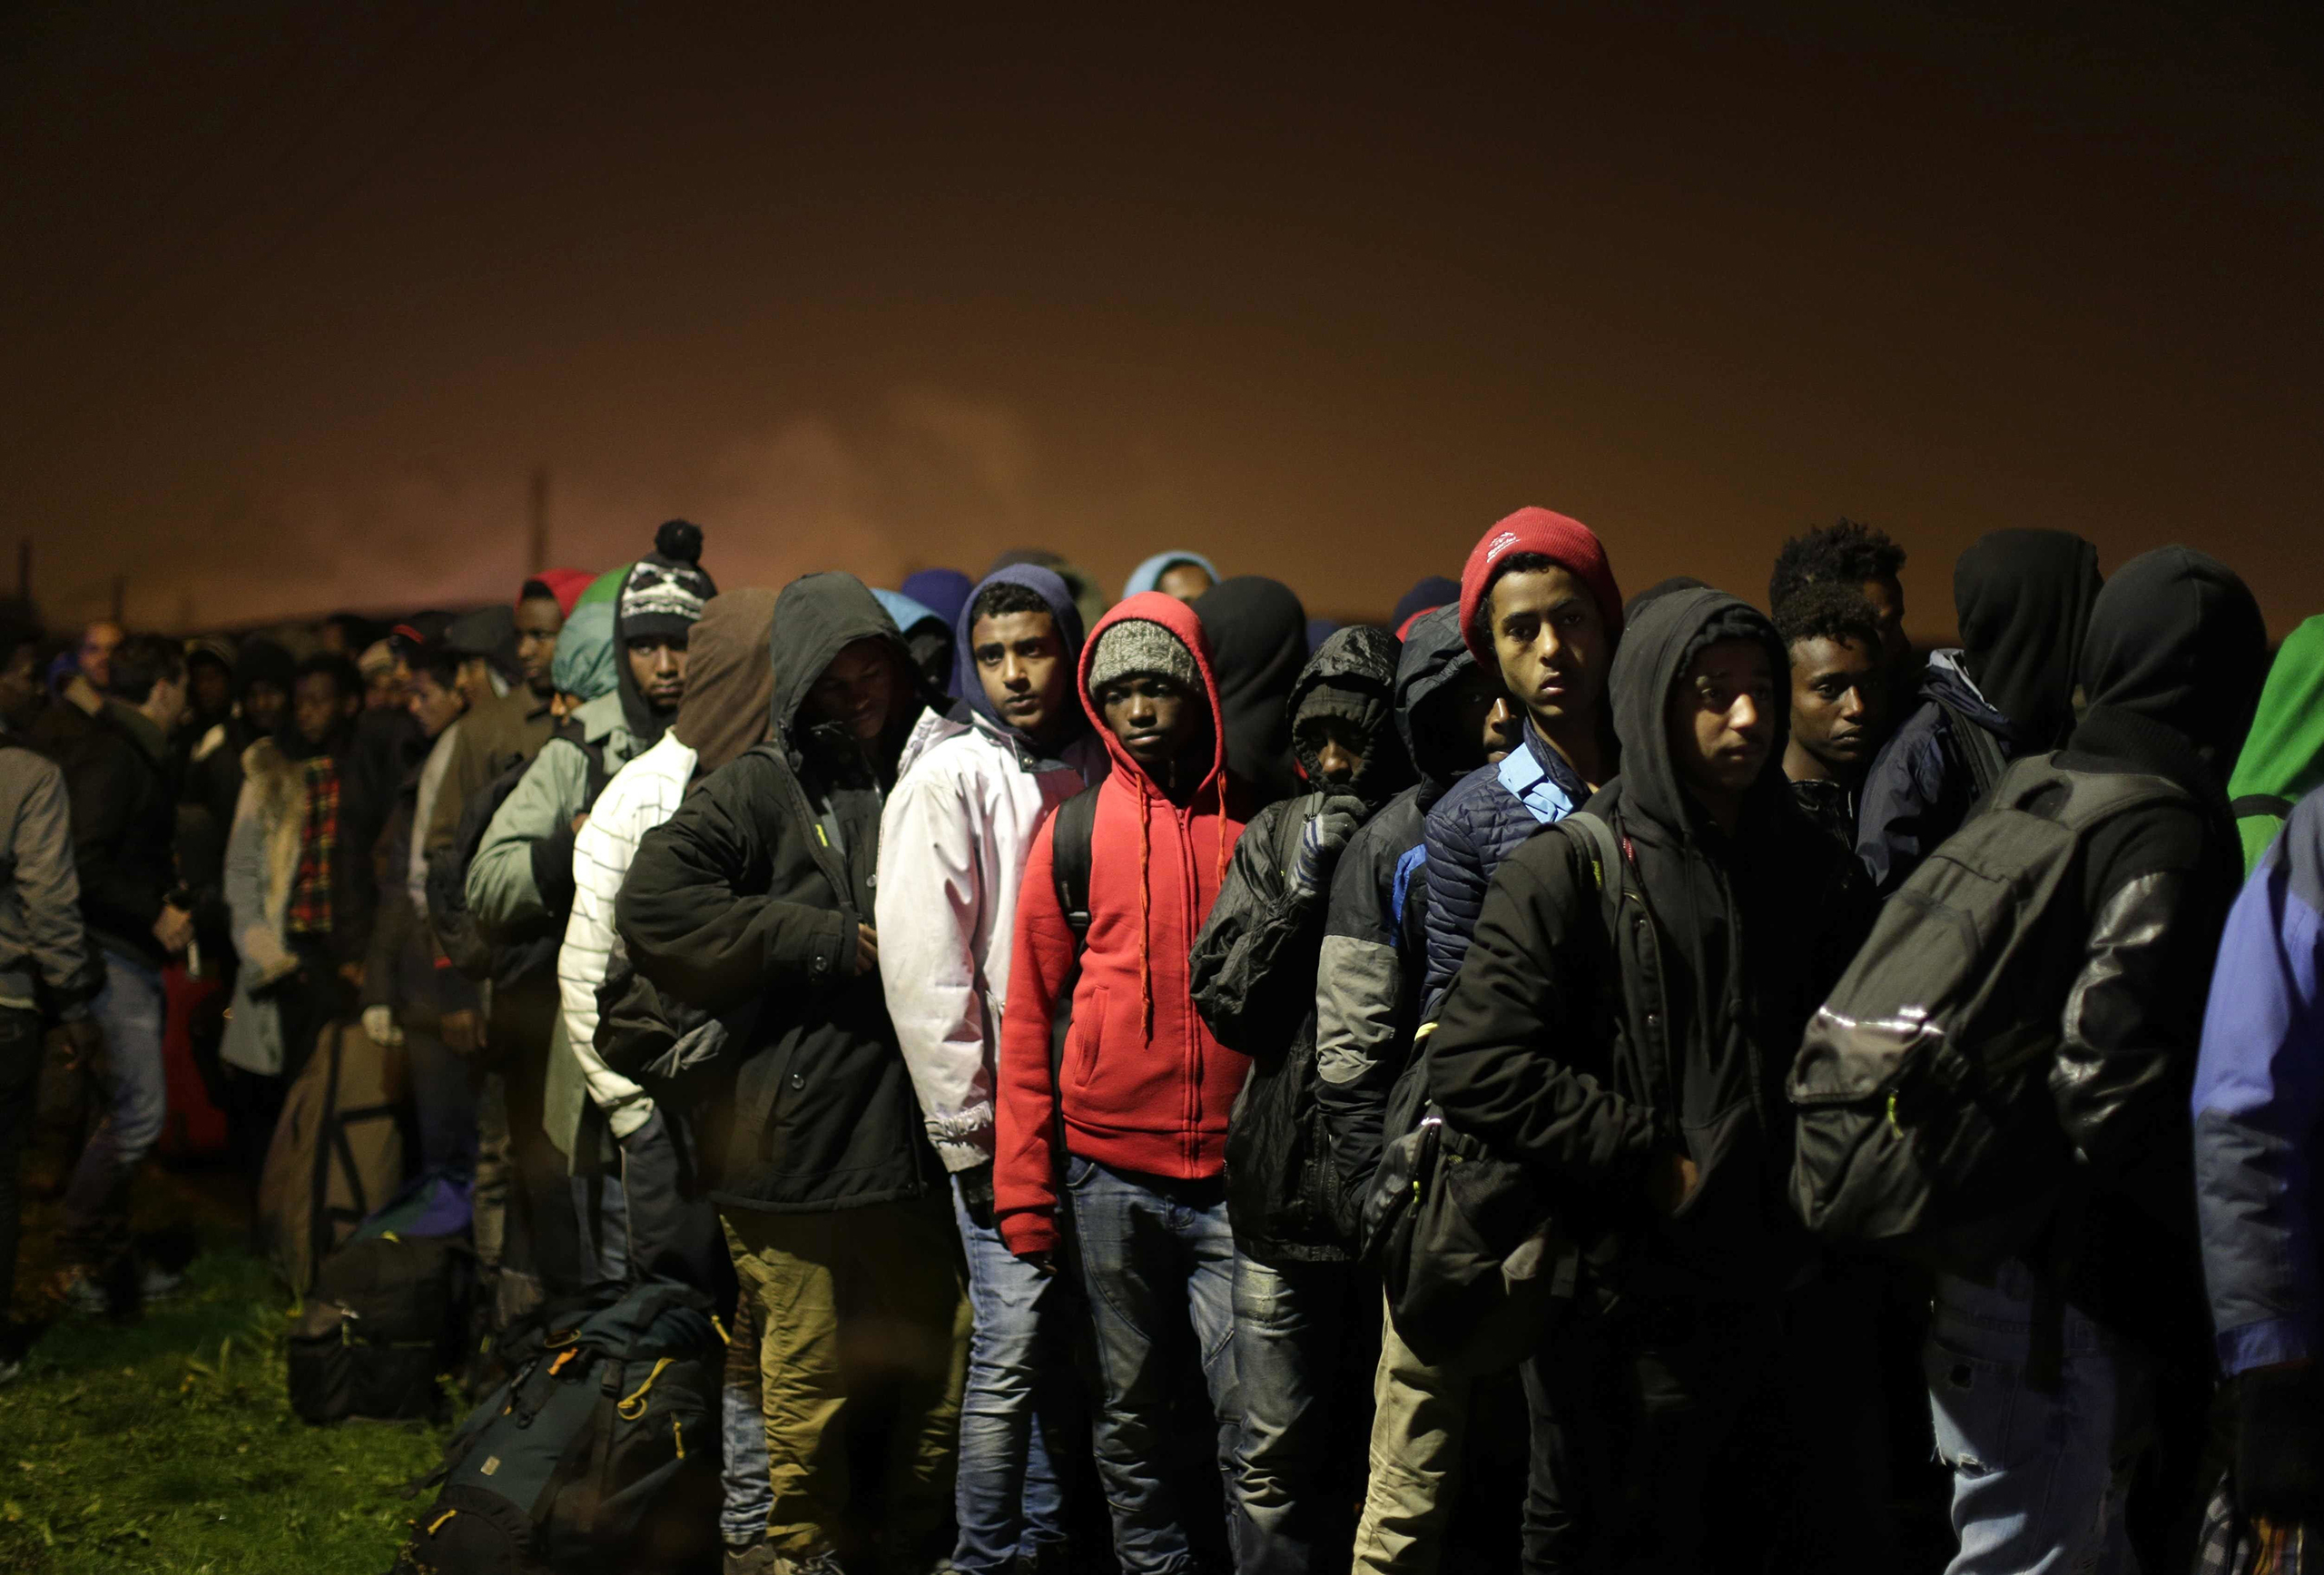 Migrants line up to register at a processing center in the makeshift migrant camp known as  the Jungle,  near Calais, northern France, on Oct. 24, 2016.